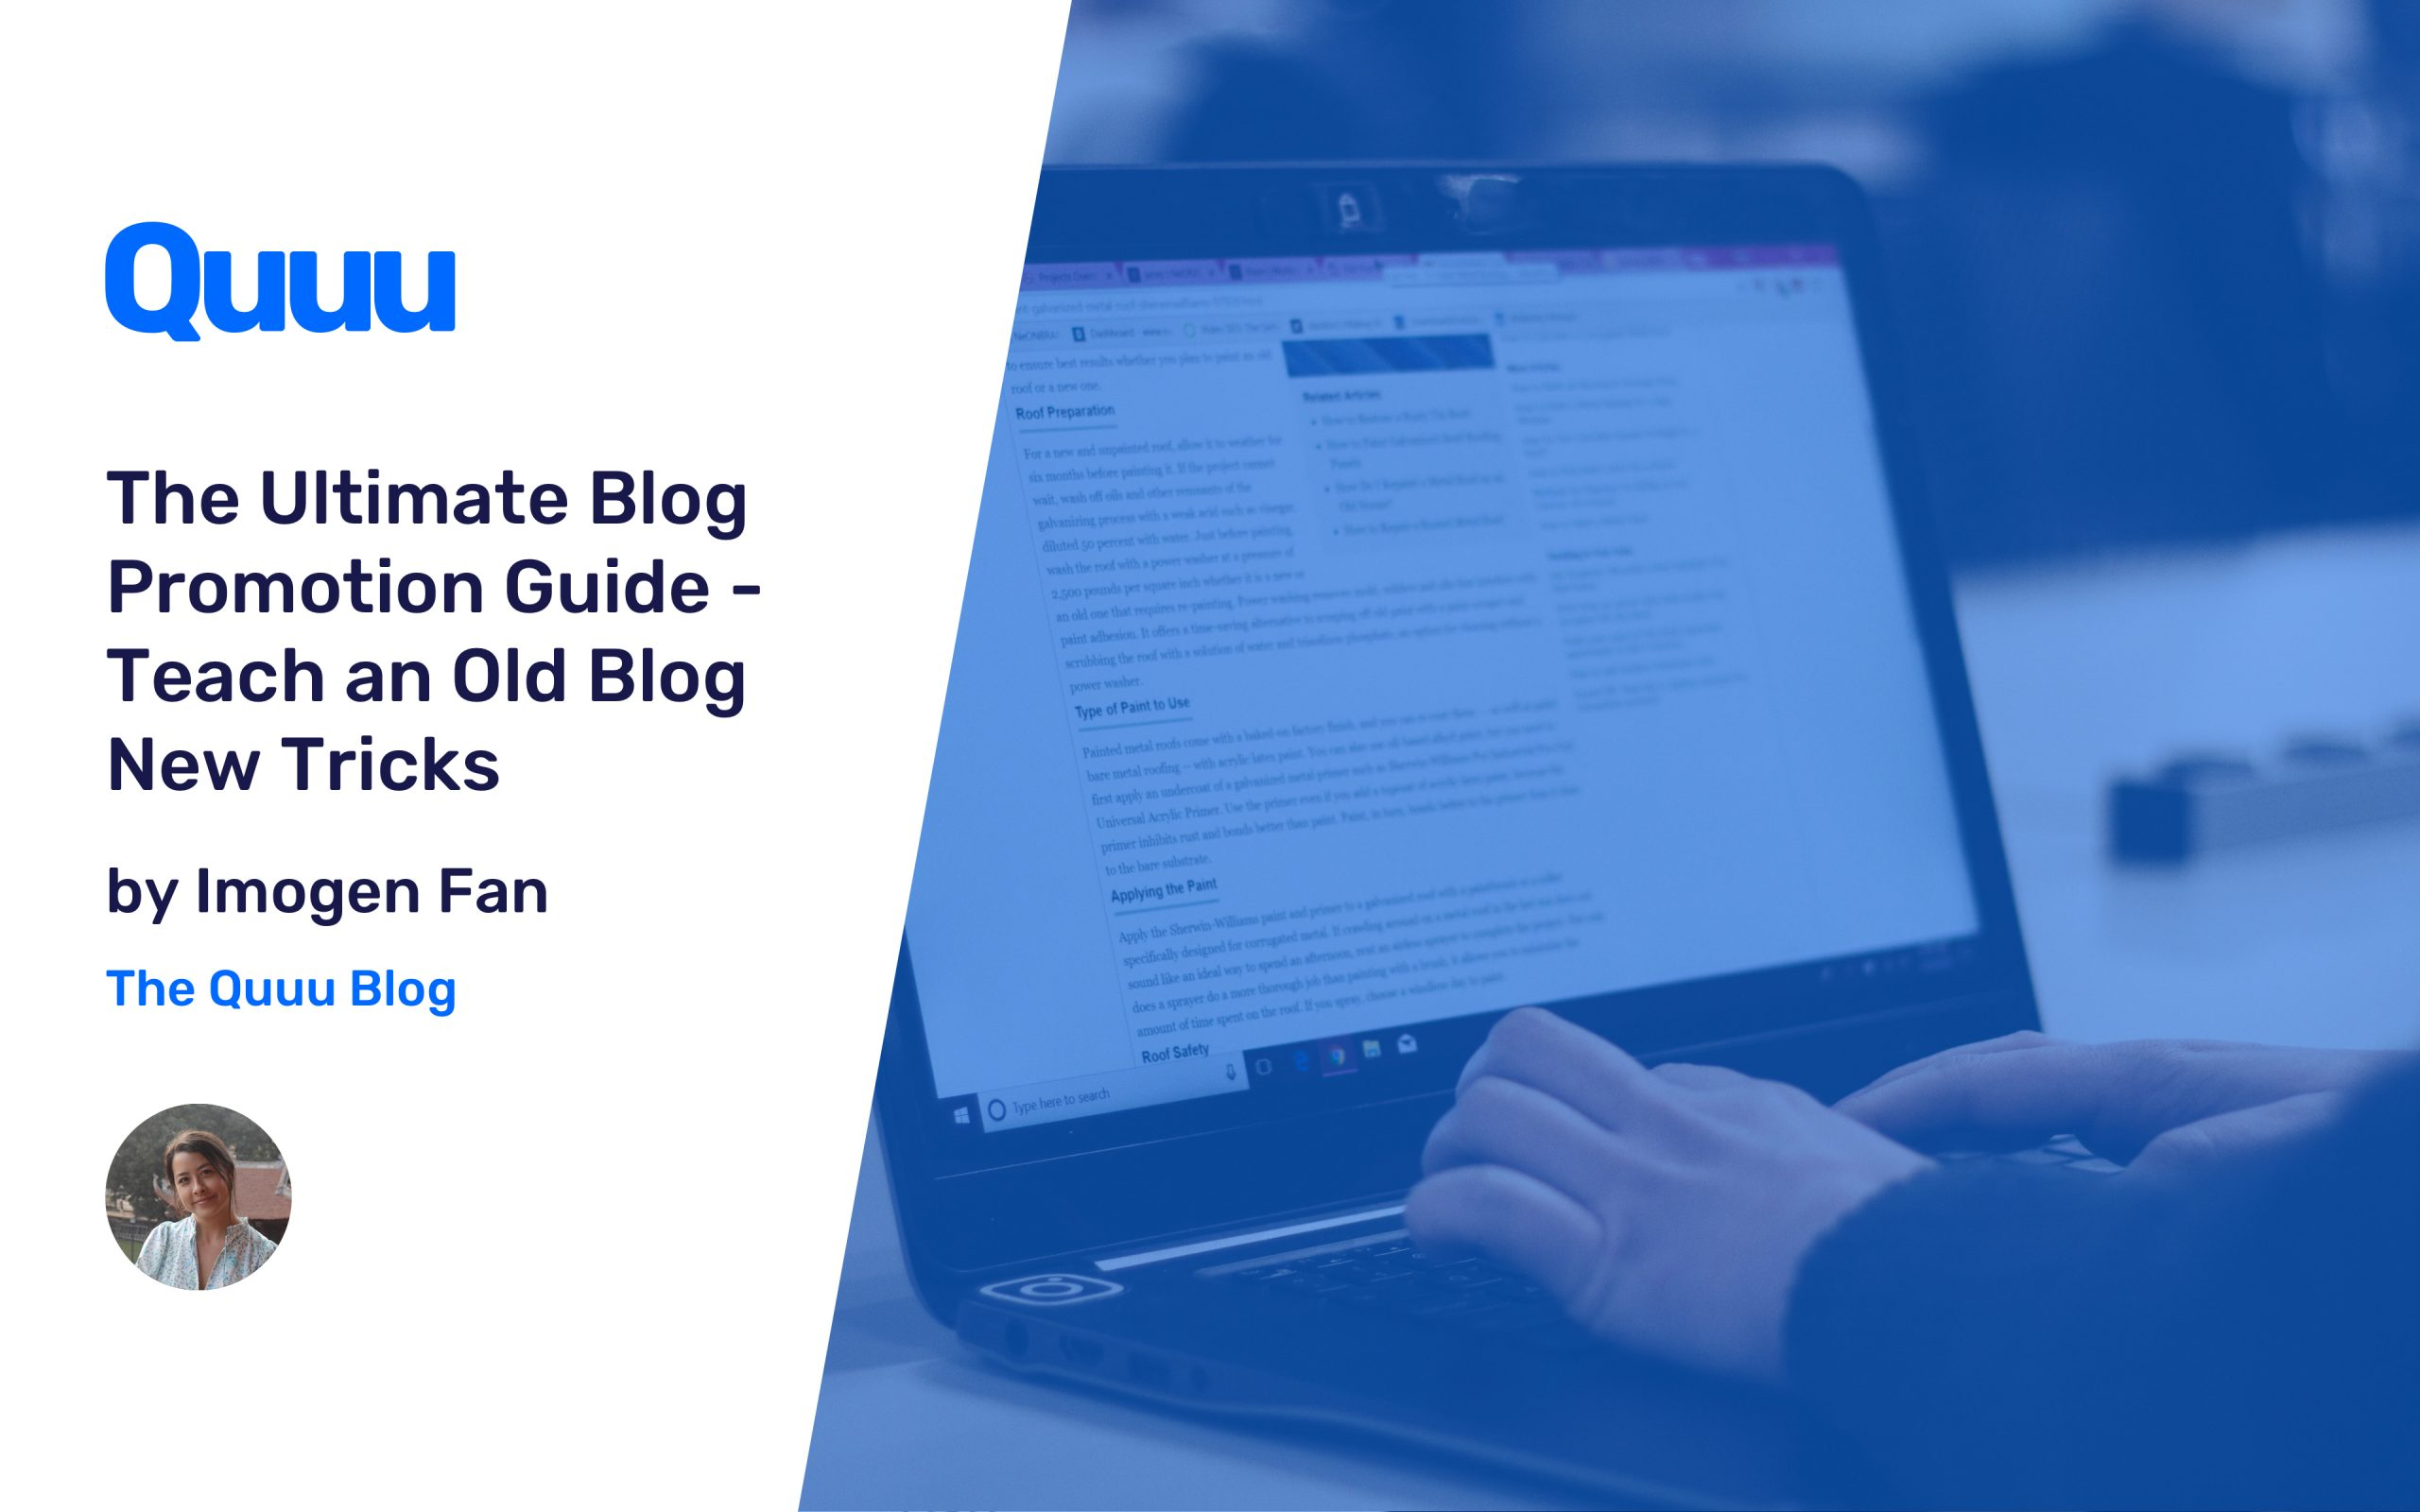 The Ultimate Blog Promotion Guide - Teach an Old Blog New Tricks